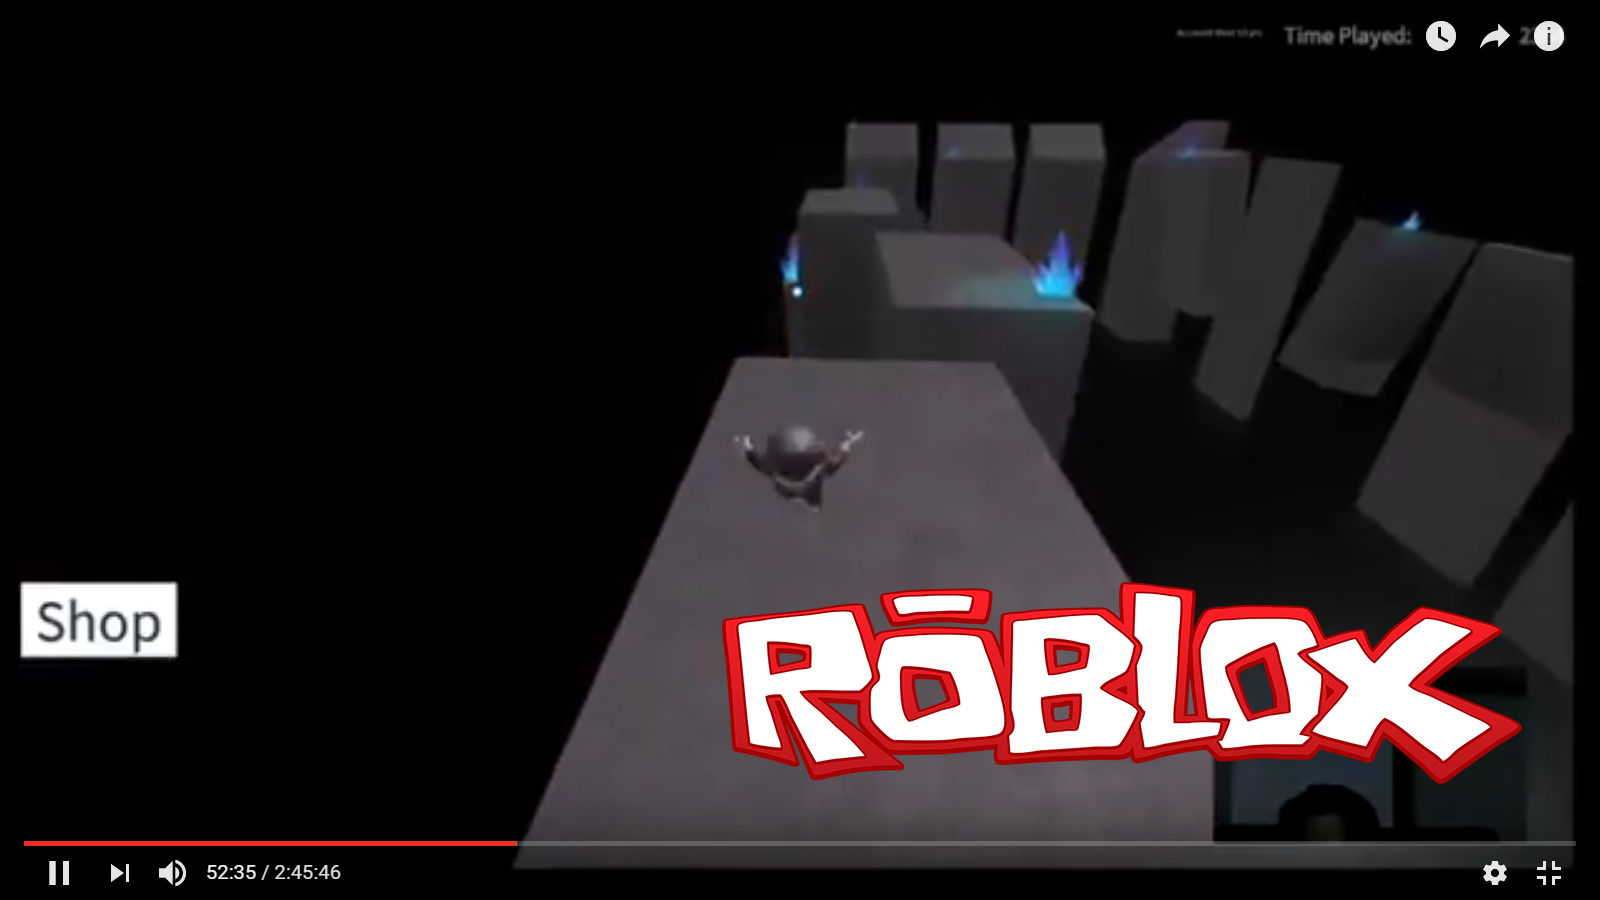 Roblox download size xbox one | Download Roblox  2019-04-04